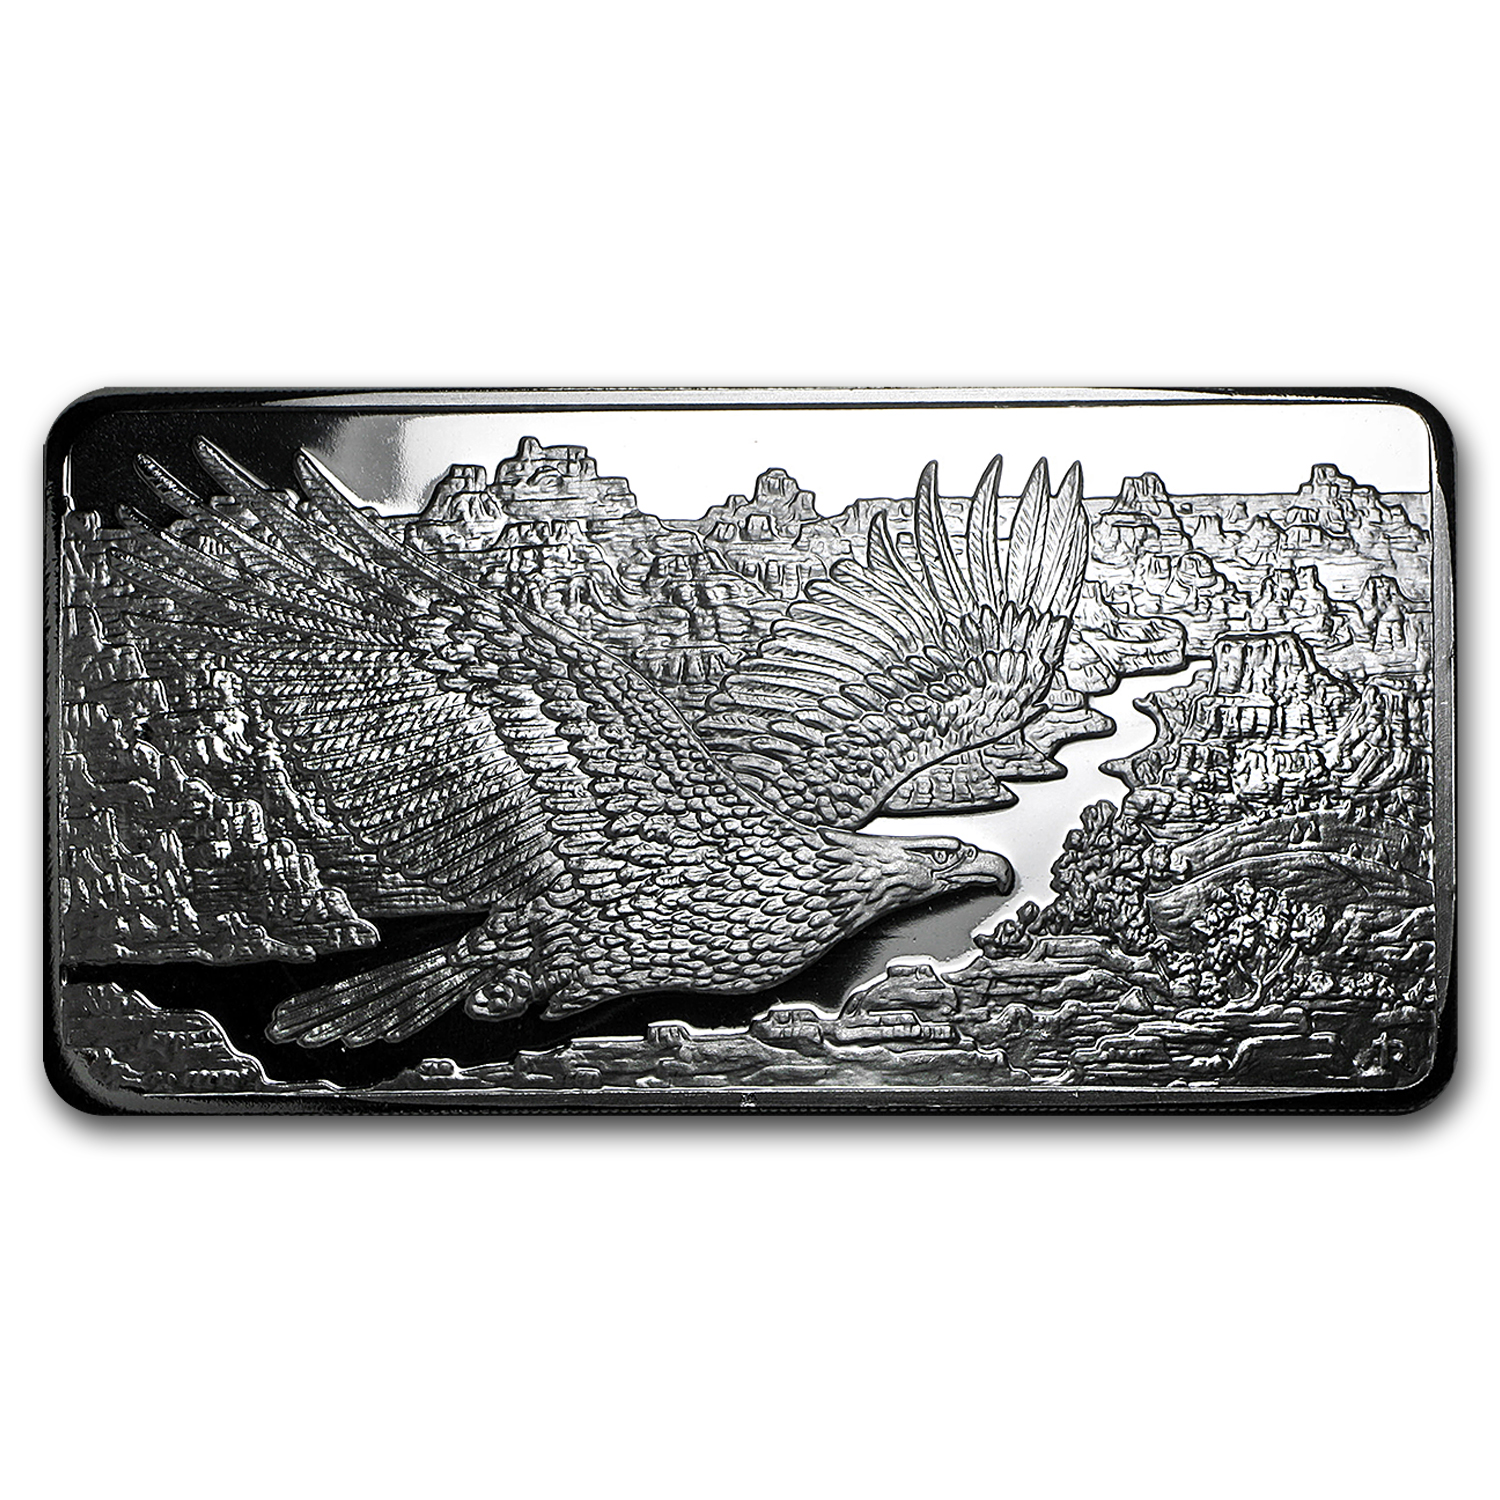 10 oz Silver Bar - Republic Metals Corp. Eagle Design (RMC)